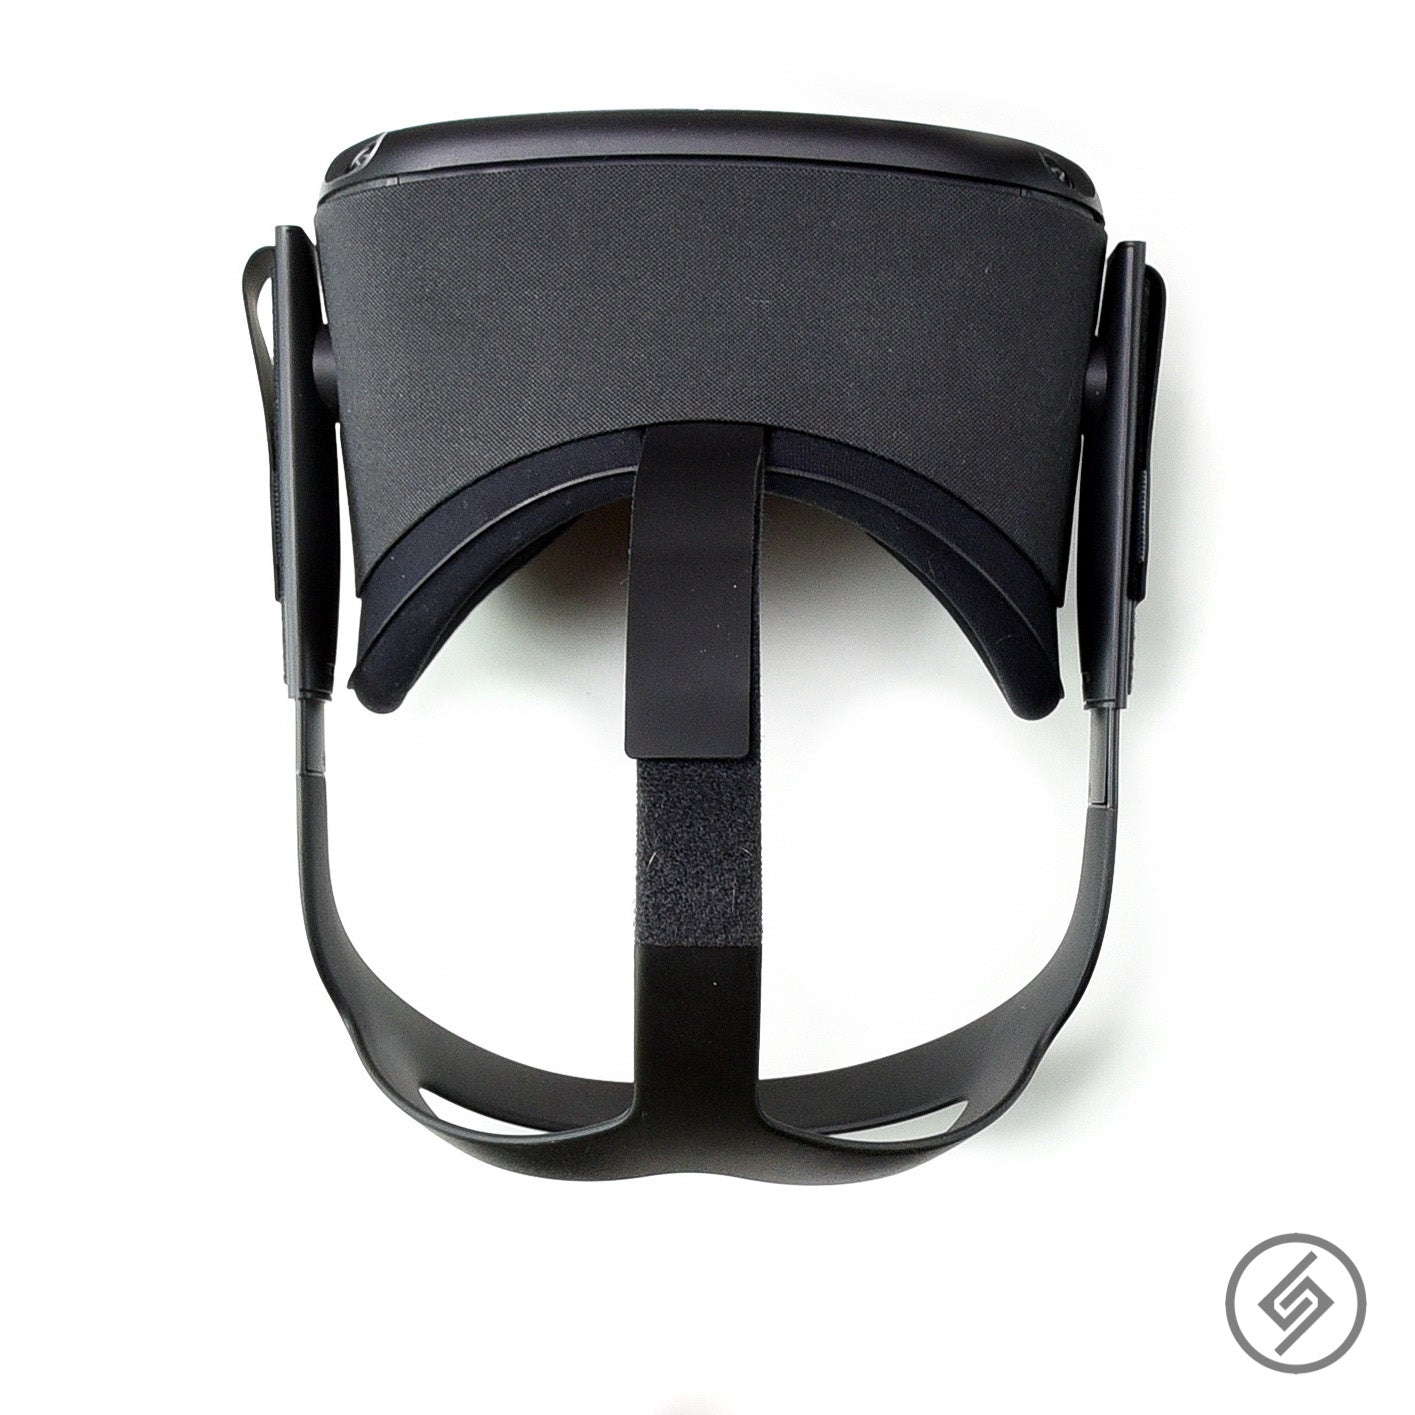 Facebook Oculus Quest VR Headset Mask Controller Hook Holder Mounting Accessory Storage Organization